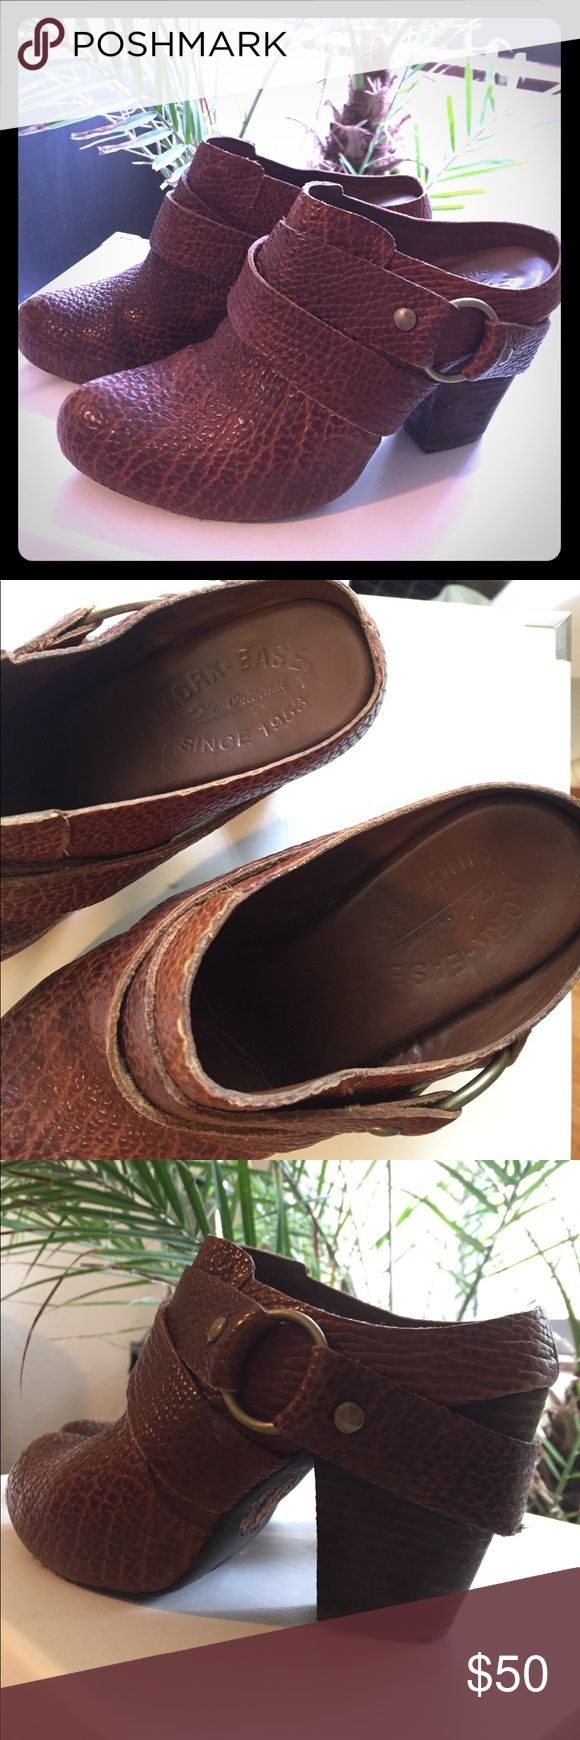 Kork-Ease brown leather harness mules clogs Kork-Ease brown leather harness mules clogs Kork-Ease Shoes Mules & Clogs